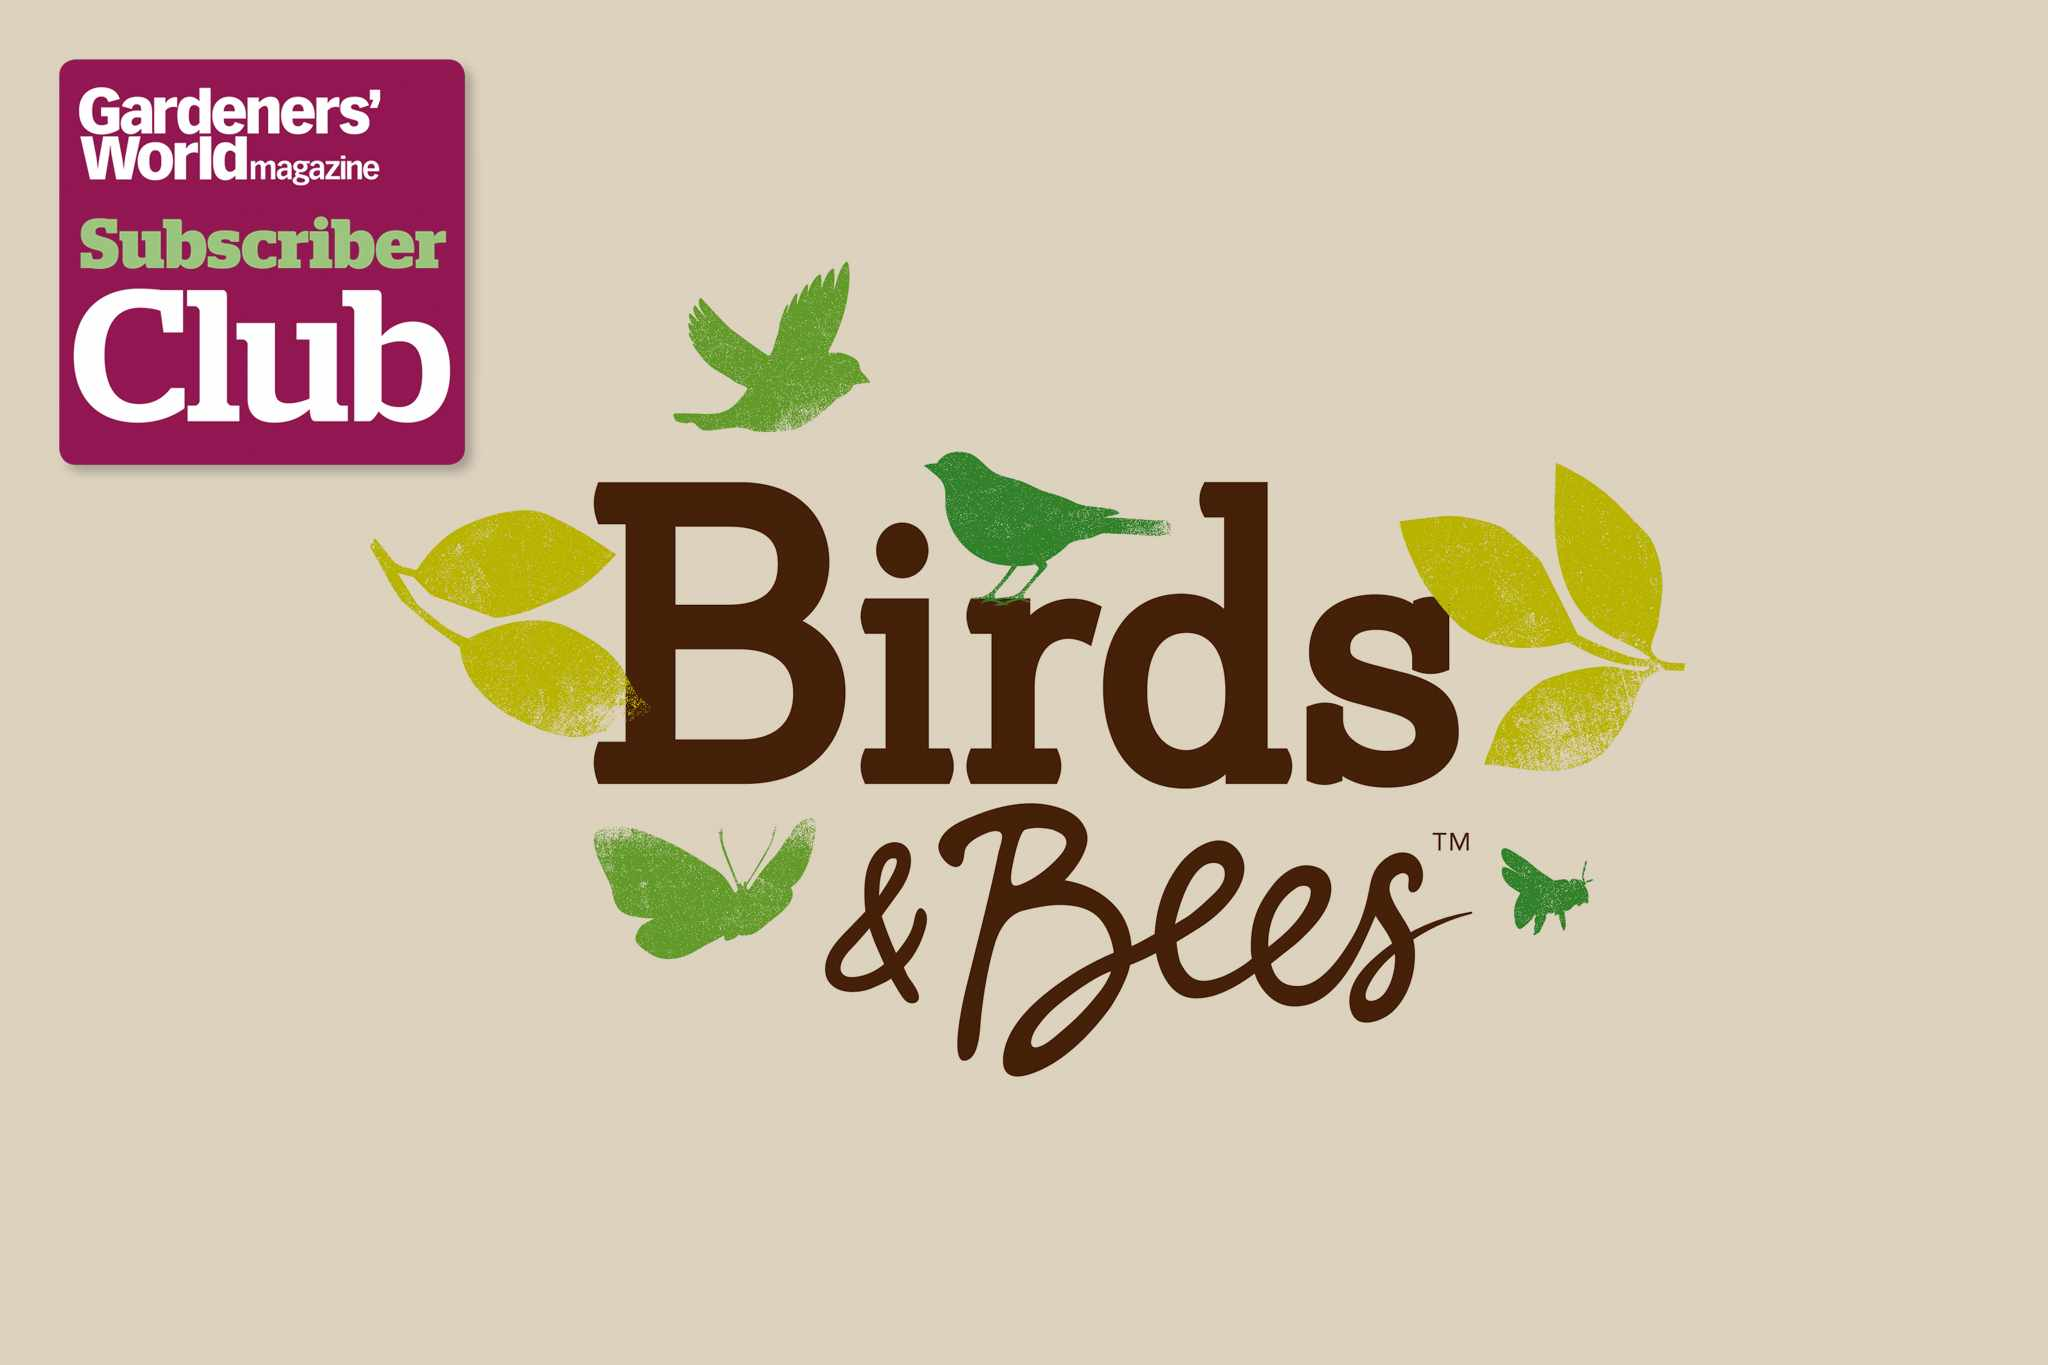 Birds & Bees BBC Gardeners' World Magazine Subscriber Club discount